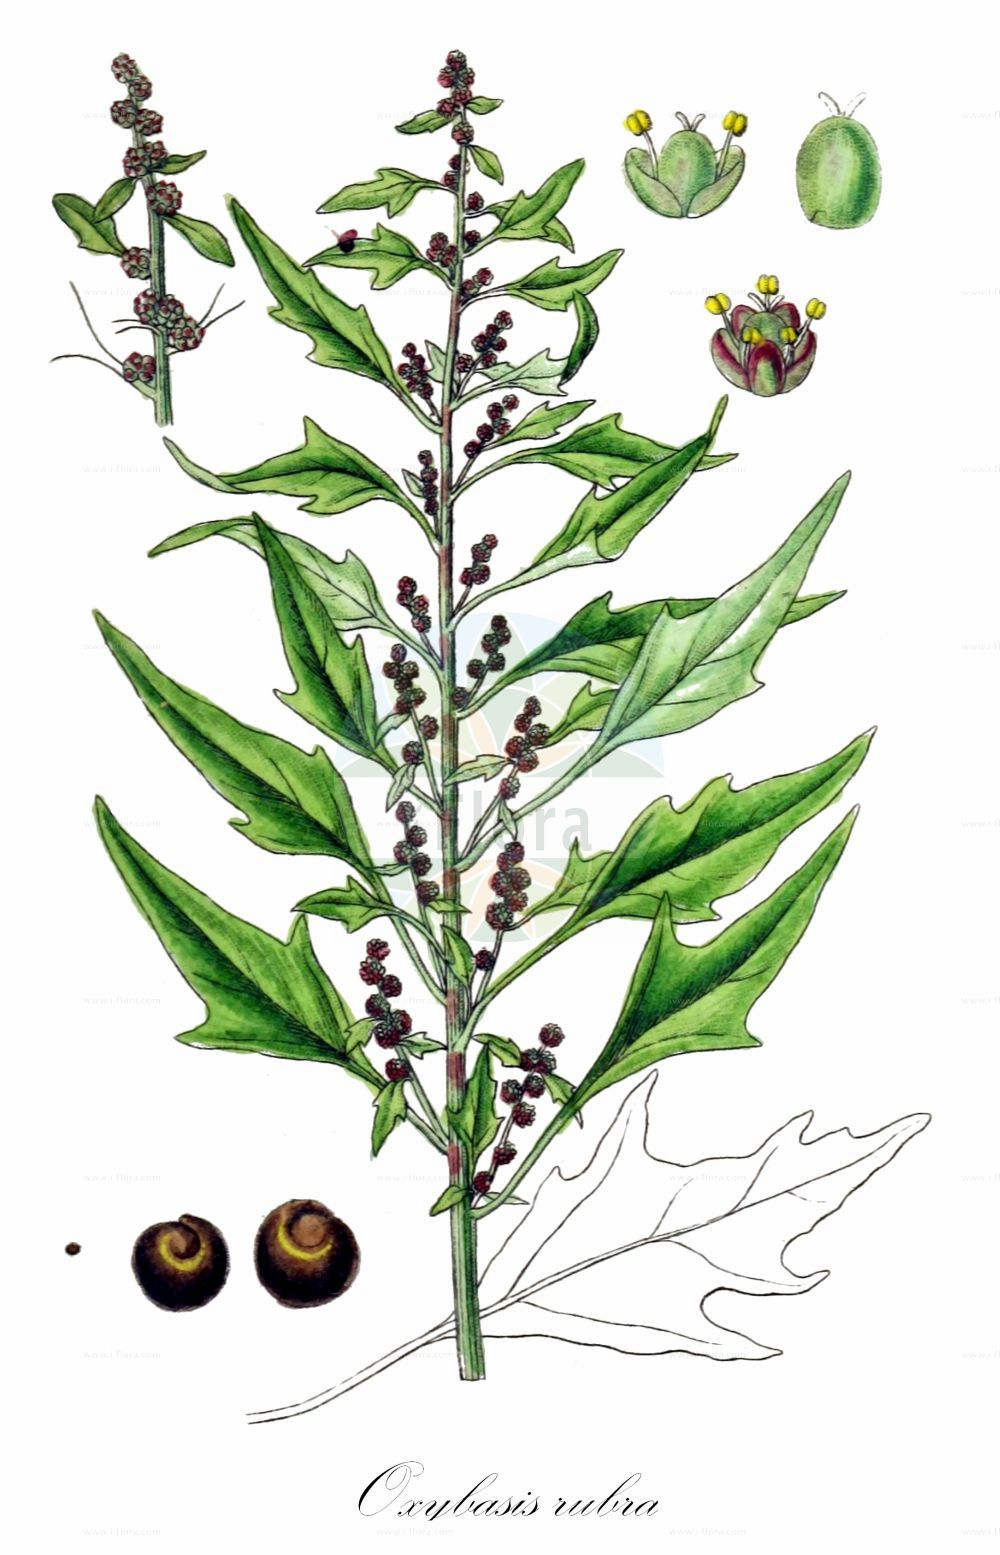 Historische Abbildung von Oxybasis rubra (Roter Gaensefuss - Red Goosefoot). Das Bild zeigt Blatt, Bluete, Frucht und Same. ---- Historical Drawing of Oxybasis rubra (Roter Gaensefuss - Red Goosefoot).The image is showing leaf, flower, fruit and seed.(Oxybasis rubra,Roter Gaensefuss,Red Goosefoot,Blitum rubrum,Chenopodium blitoides,Chenopodium rubrum,,Coast Blite,Oxybasis,Amaranthaceae,Fuchsschwanzgewaechse,Pigweed family,Blatt,Bluete,Frucht,Same,leaf,flower,fruit,seed,Sturm (1796f))